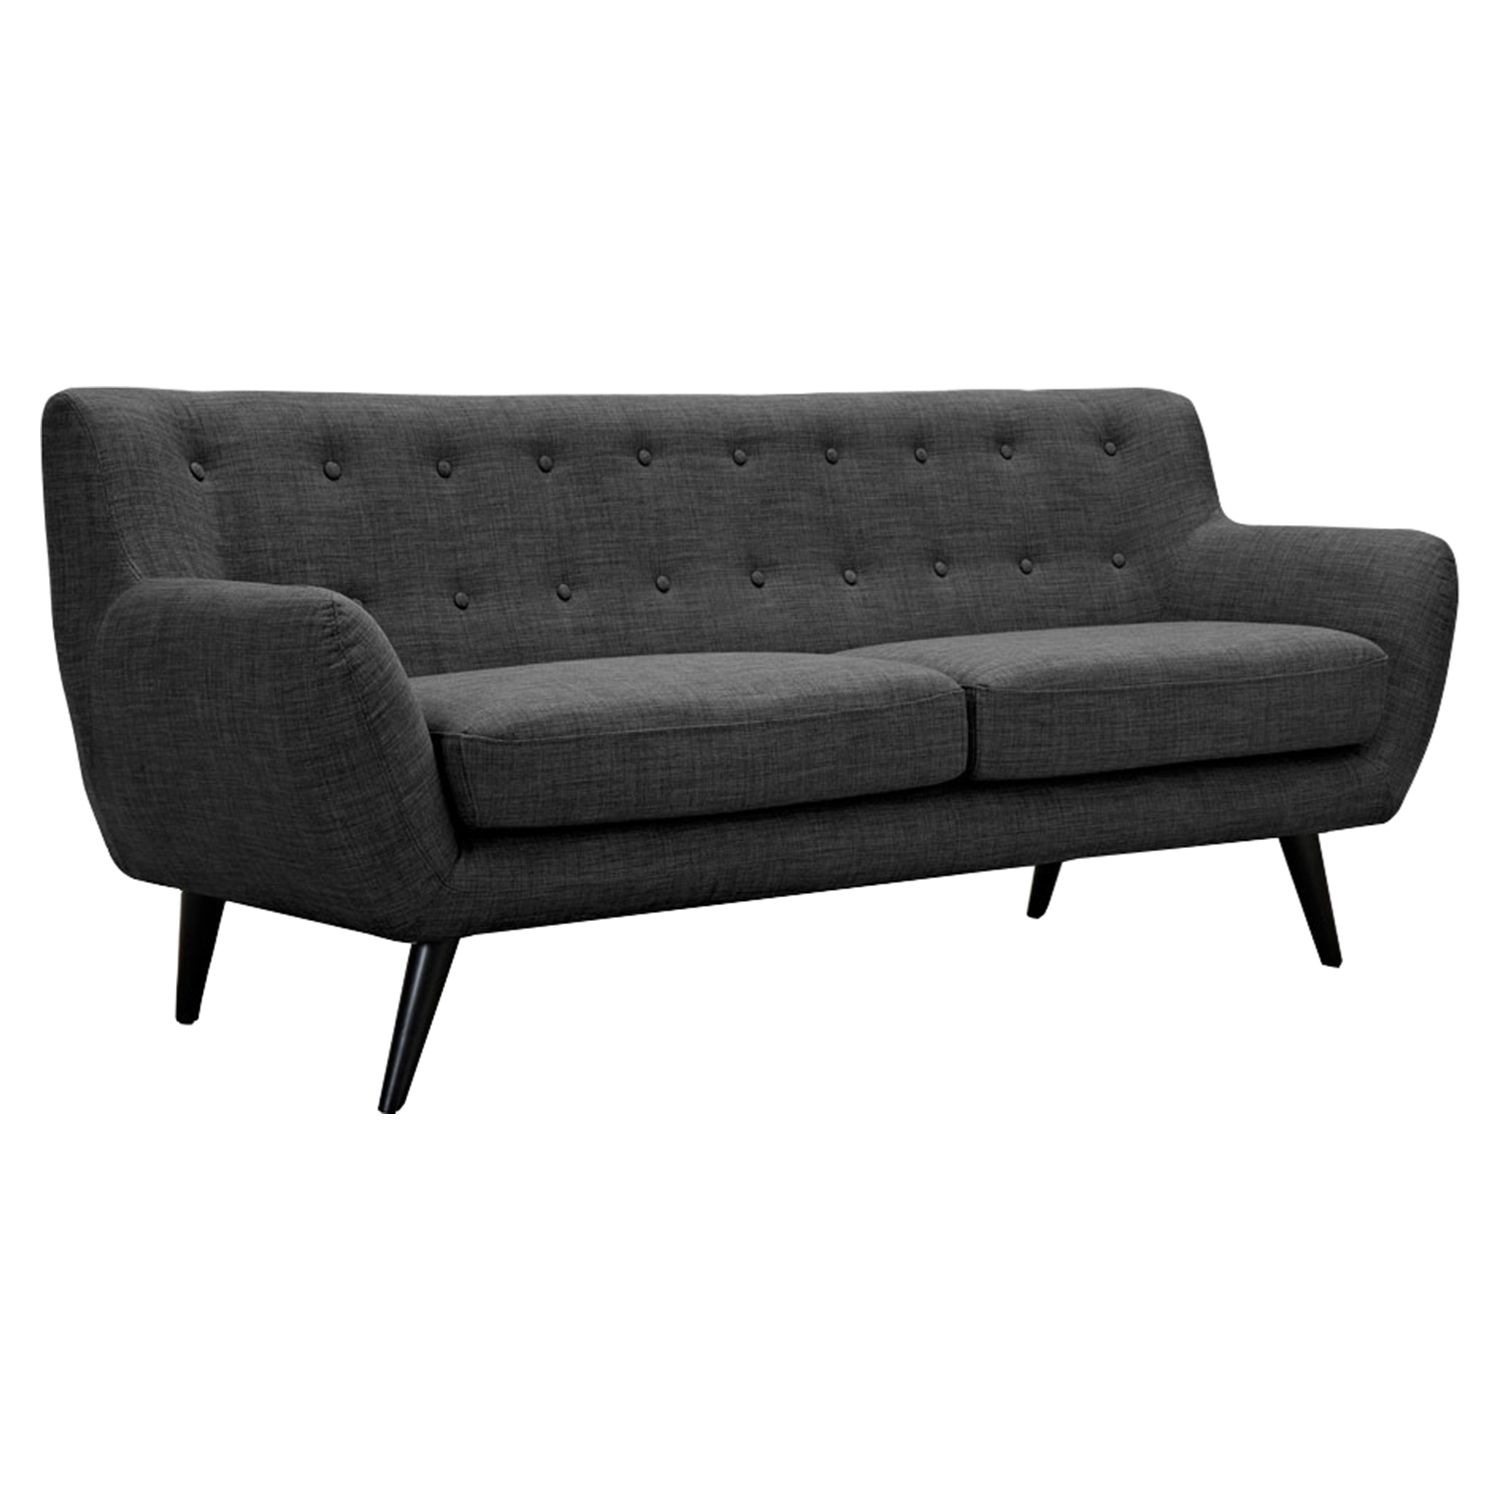 Ida Button Tufted Upholstery Sofa - Charcoal Gray - NYEK-223321